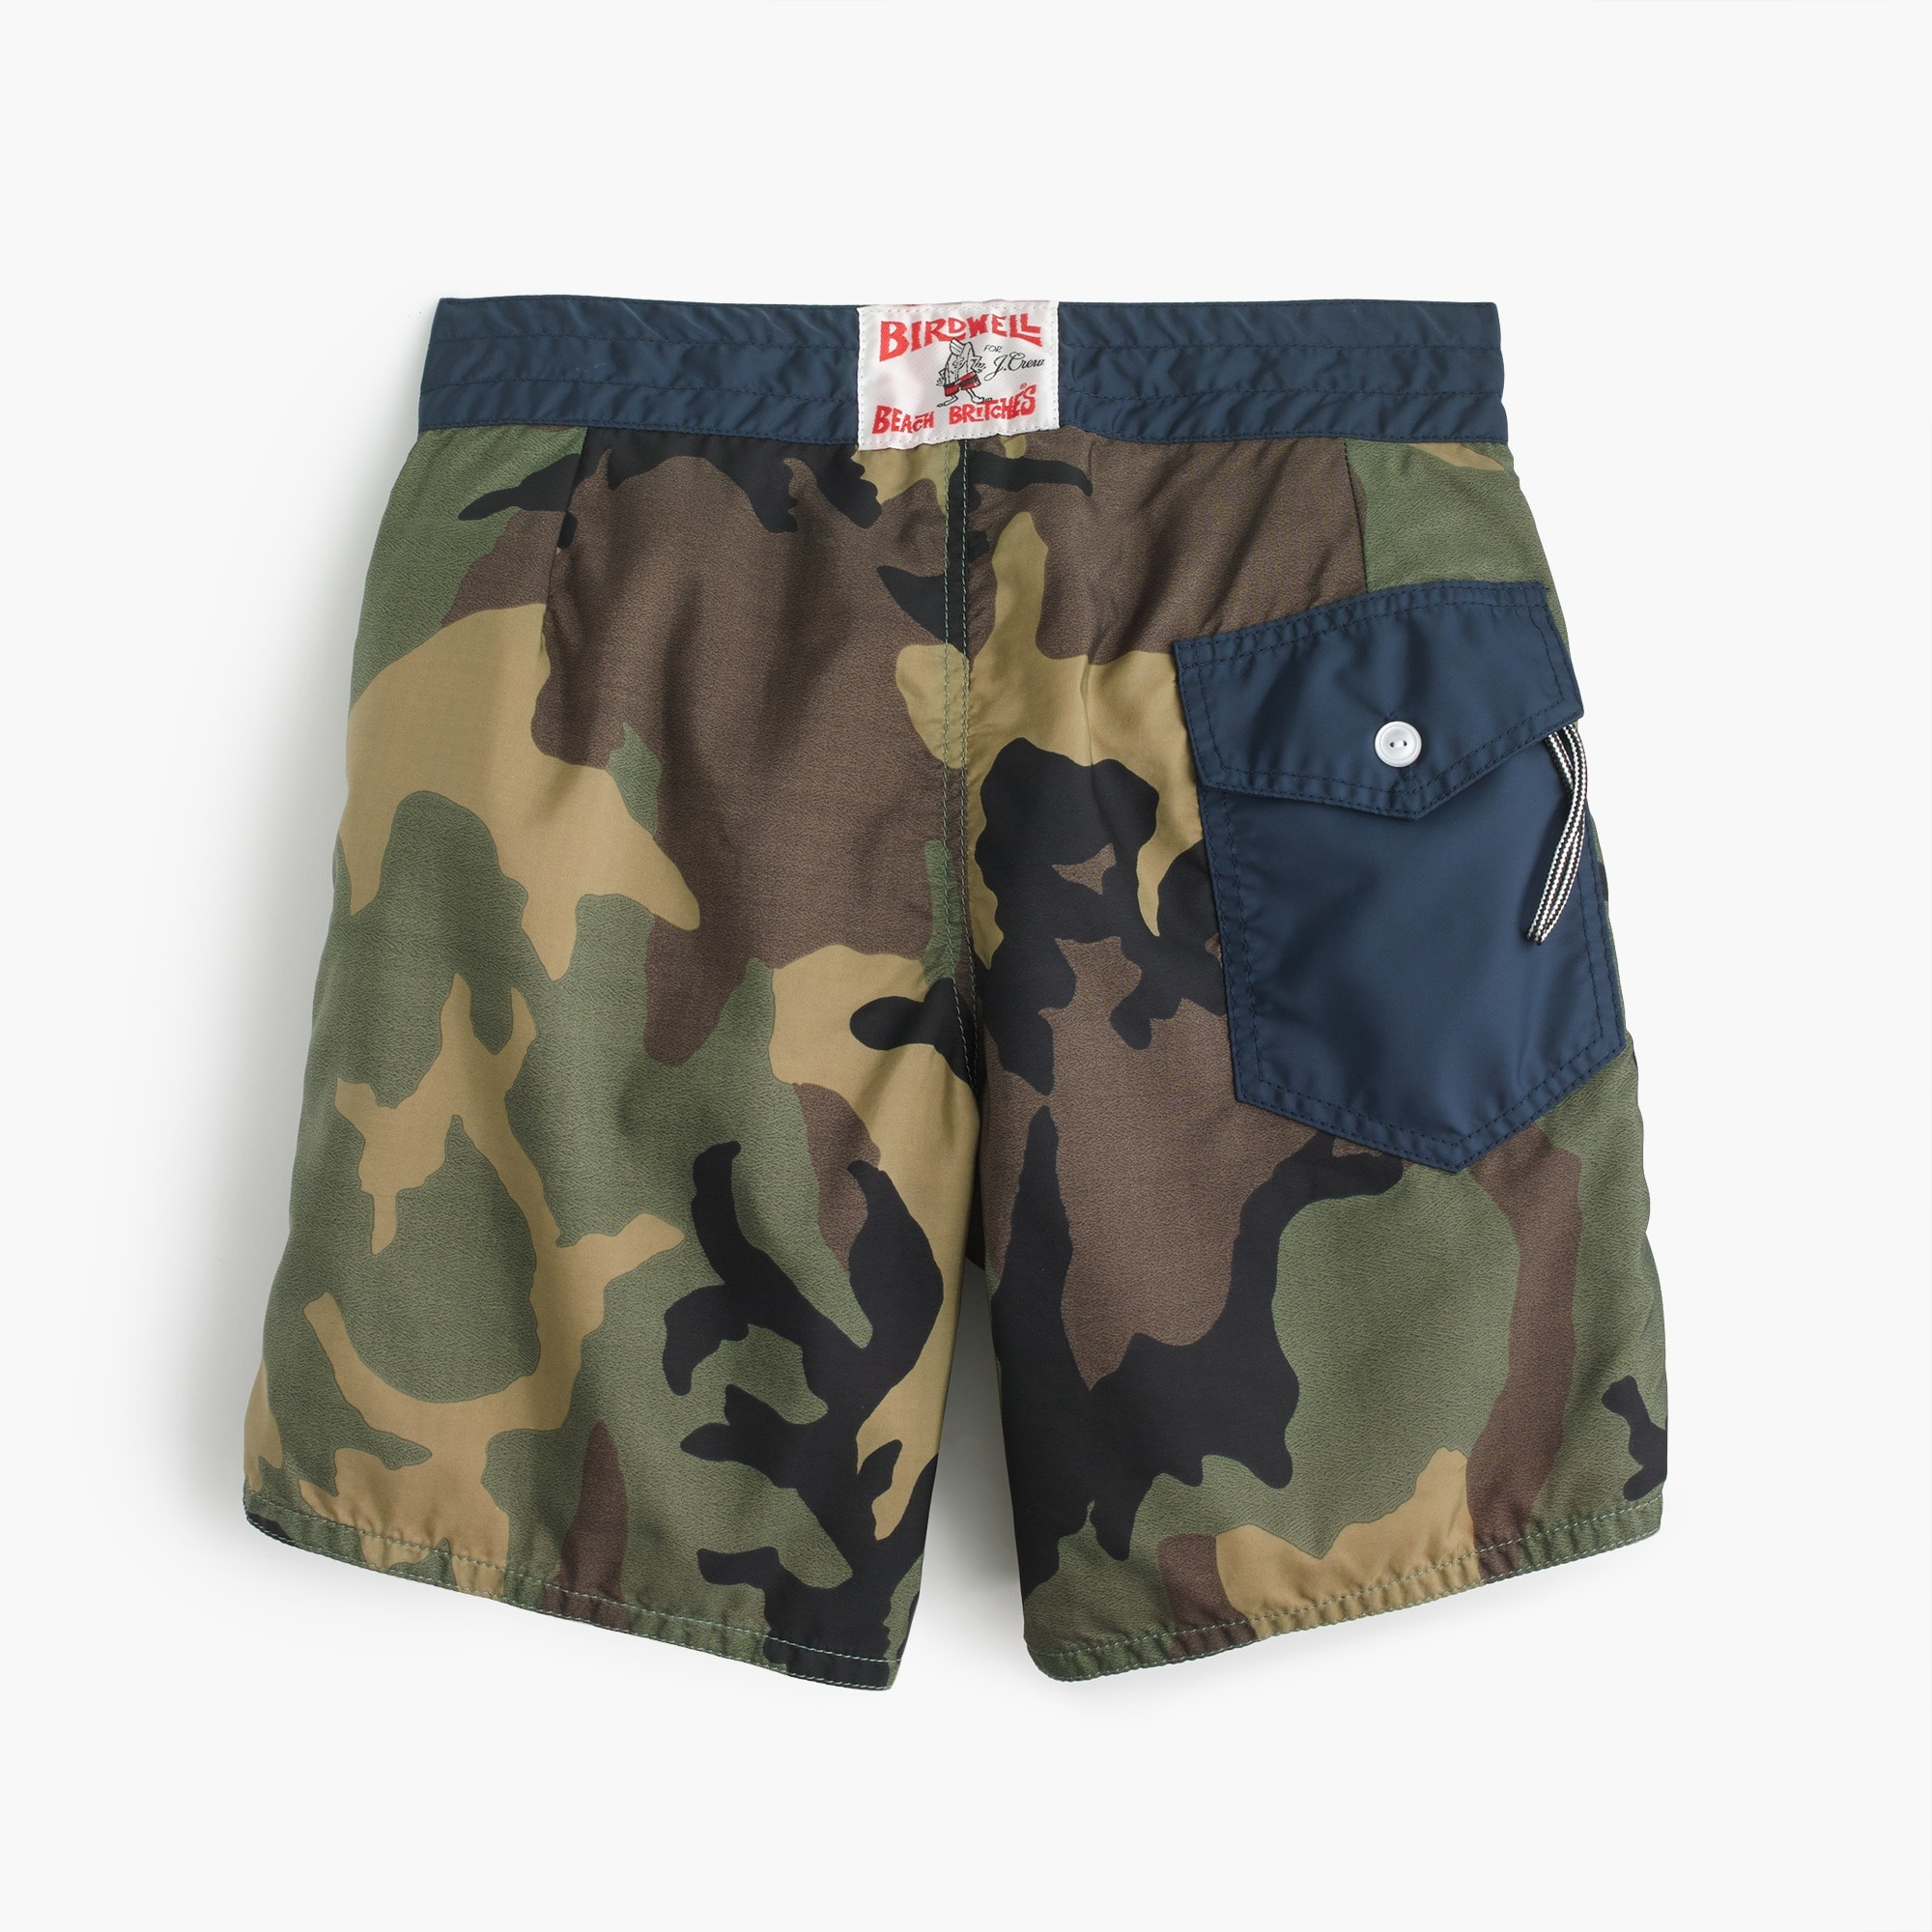 Birdwell® for J.Crew board short in camo